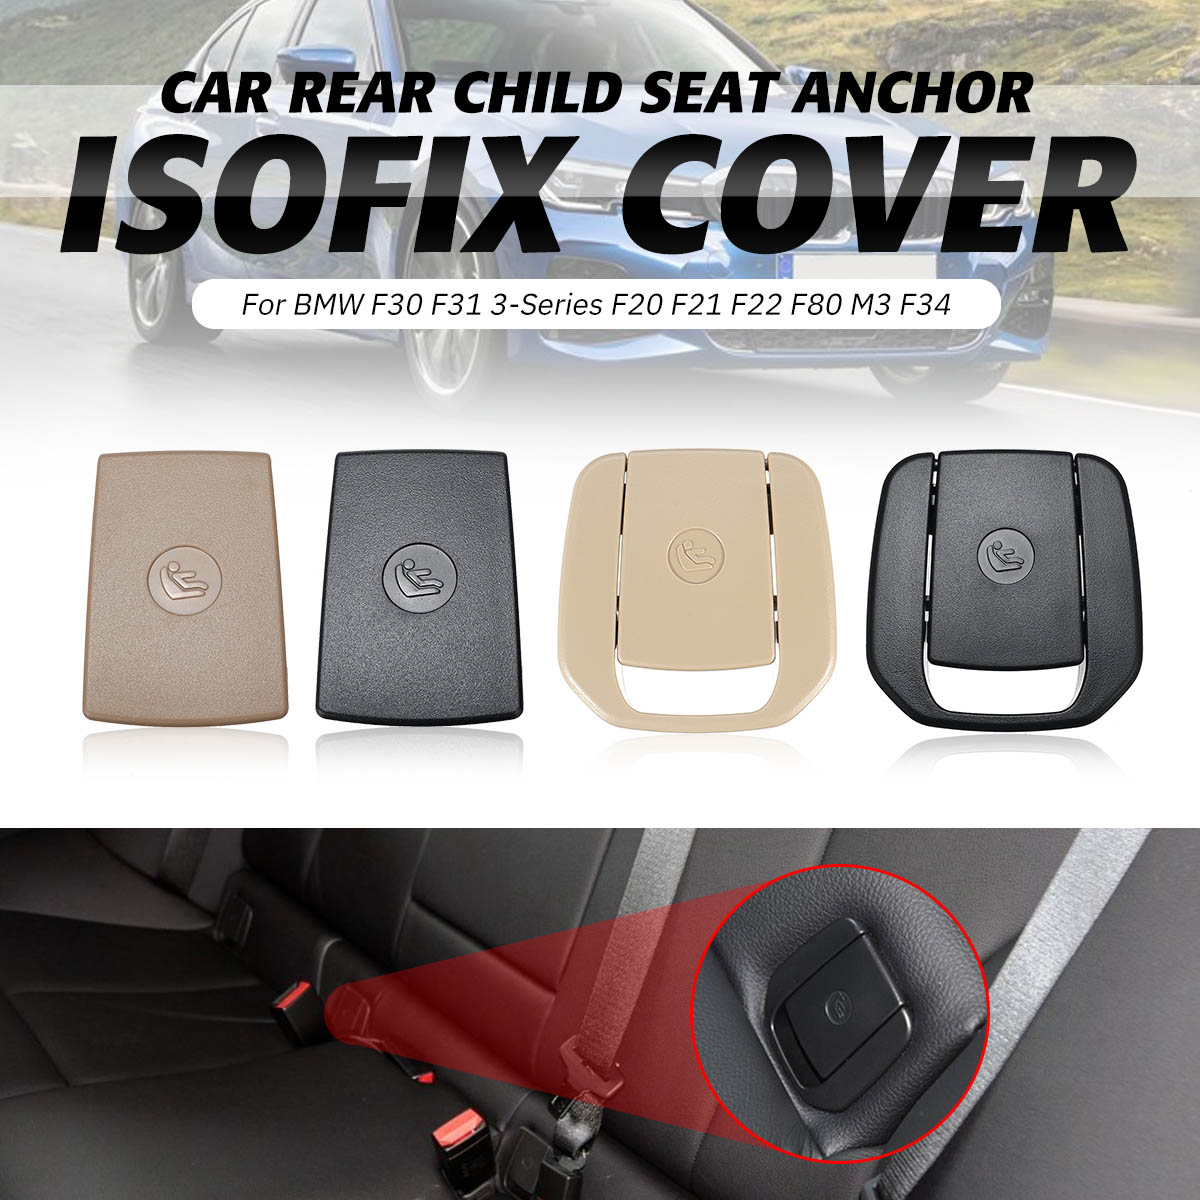 Car Rear Seat Hook ISOFIX Cover Child Restraint For BMW X1 E84 3 Series E90 F30 1Series E87 F20 F80 M3 F30 Rear Seat Hook Buckle